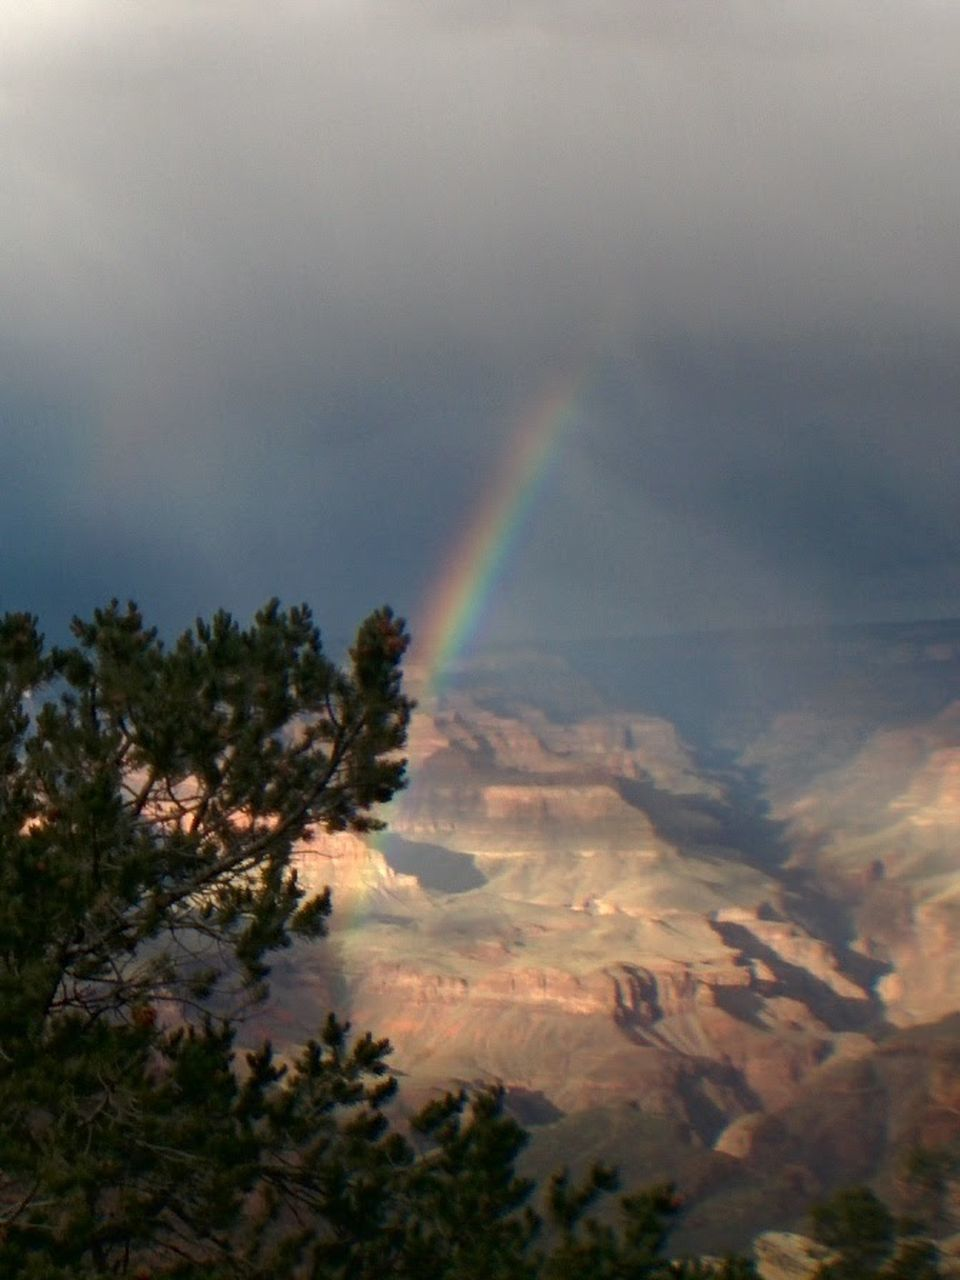 rainbow, double rainbow, beauty in nature, scenics, tree, nature, no people, day, outdoors, cloud - sky, tranquility, mountain, refraction, sky, spectrum